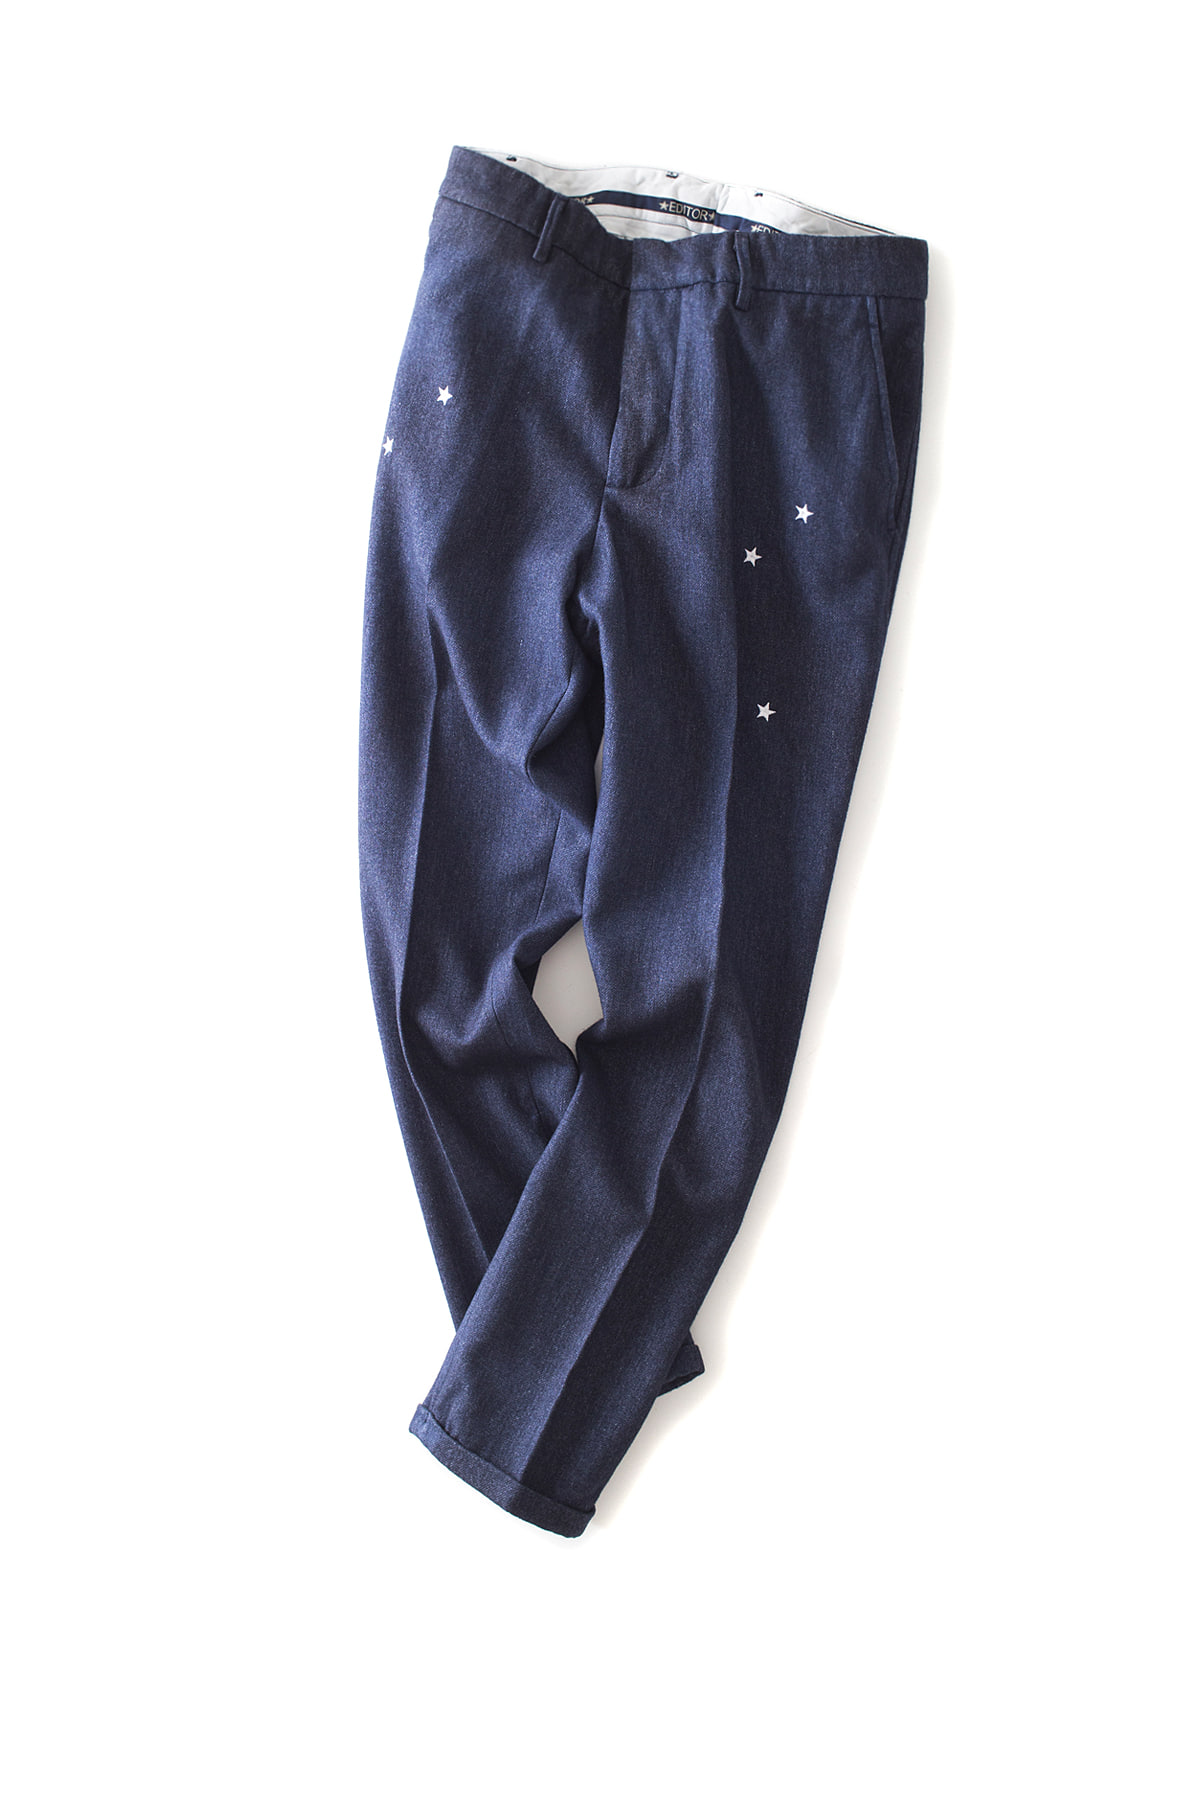 THE EDITOR : Star Embroidered Trouser (Navy)